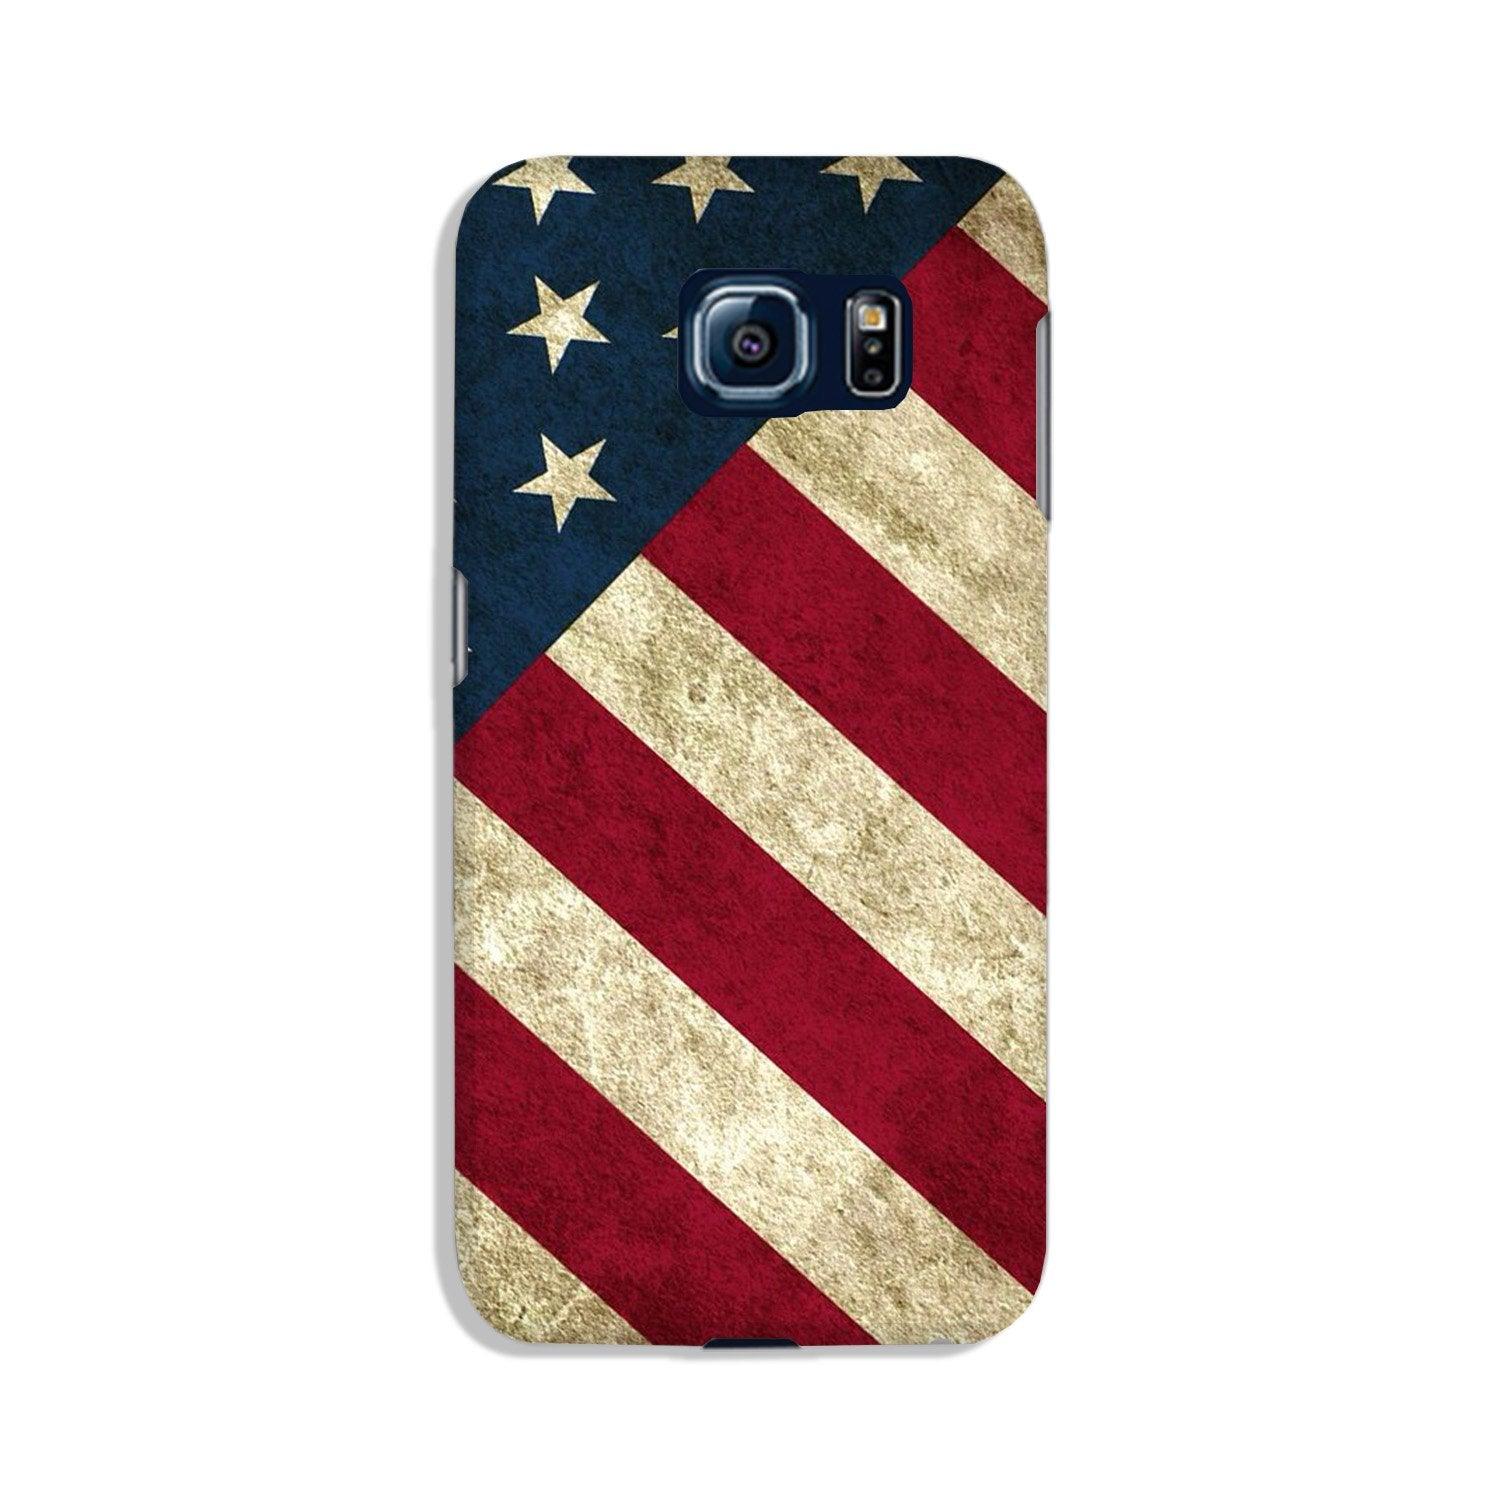 America Case for Galaxy S6